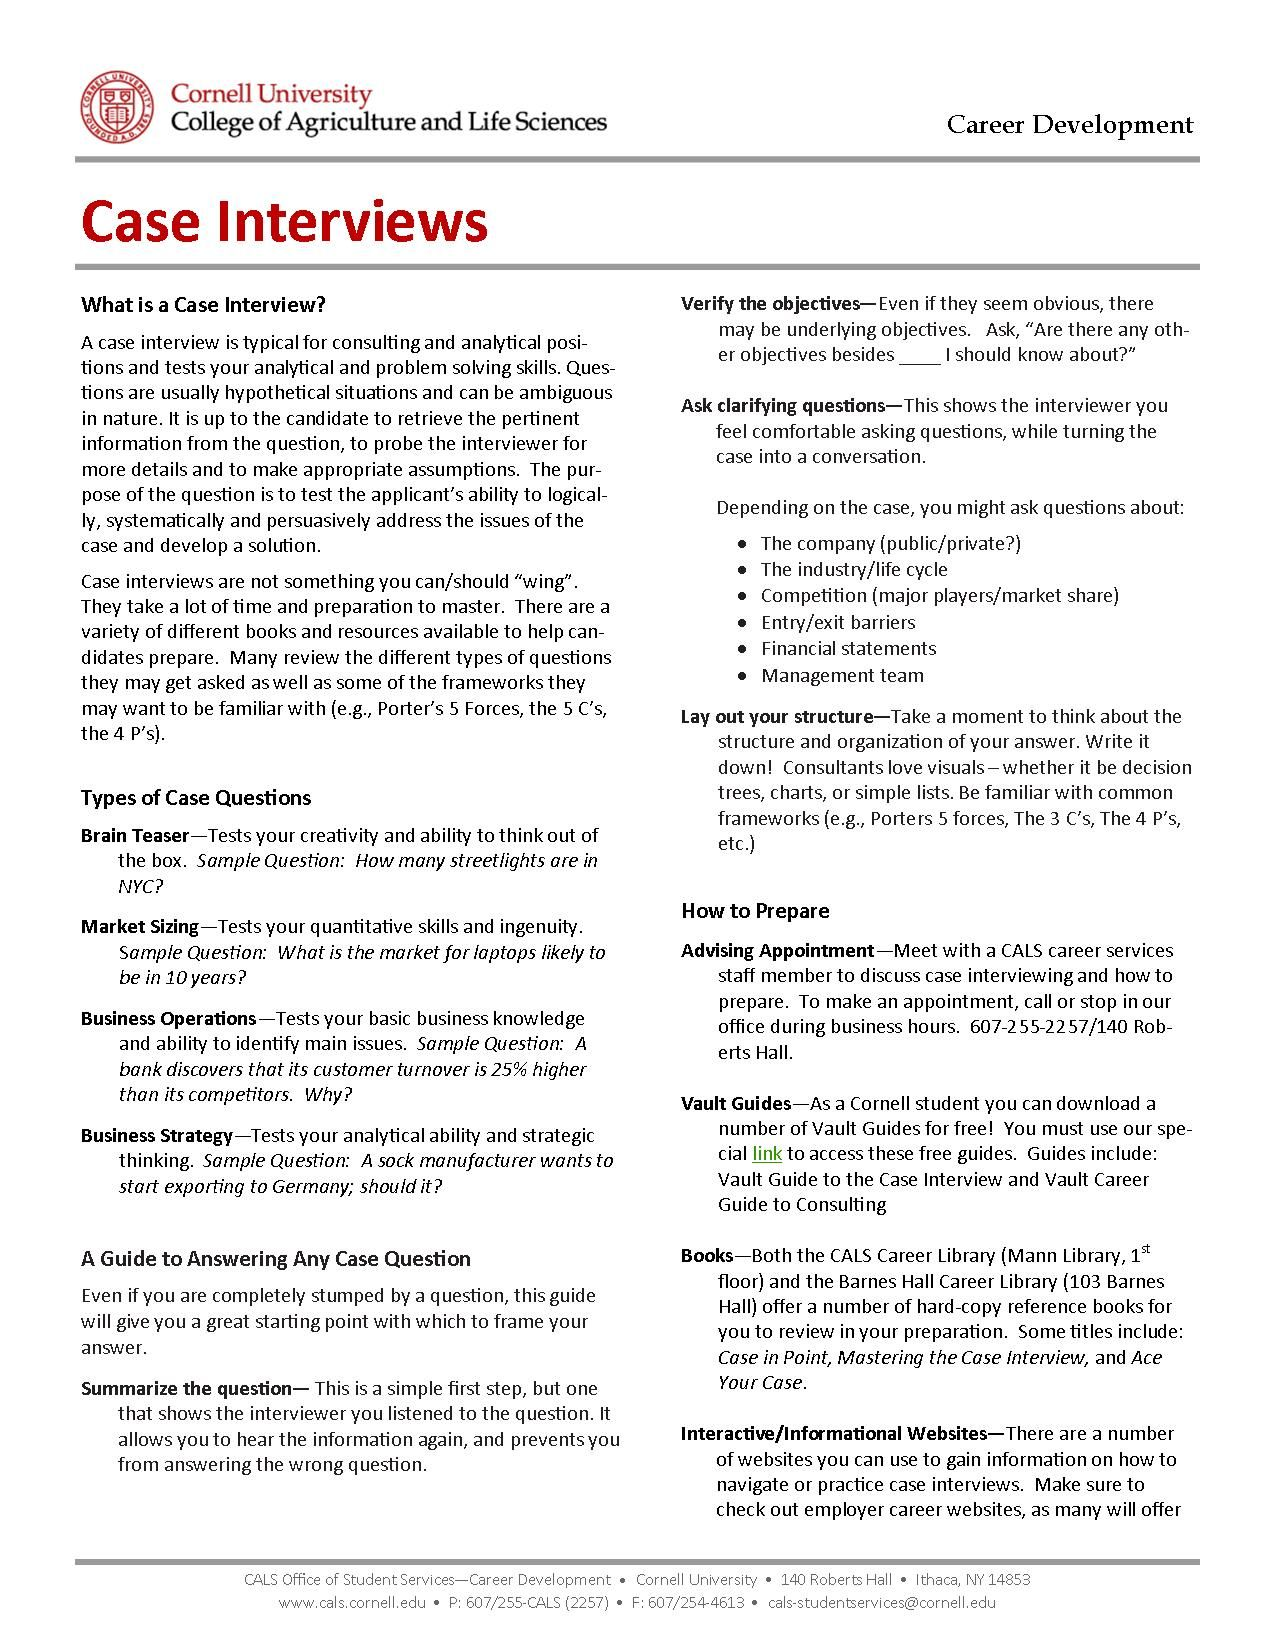 Here Are Some Great Resources To Help You Prepare For Case Interviews View This Document Online At Http Career Development Agriculture Careers Life Science